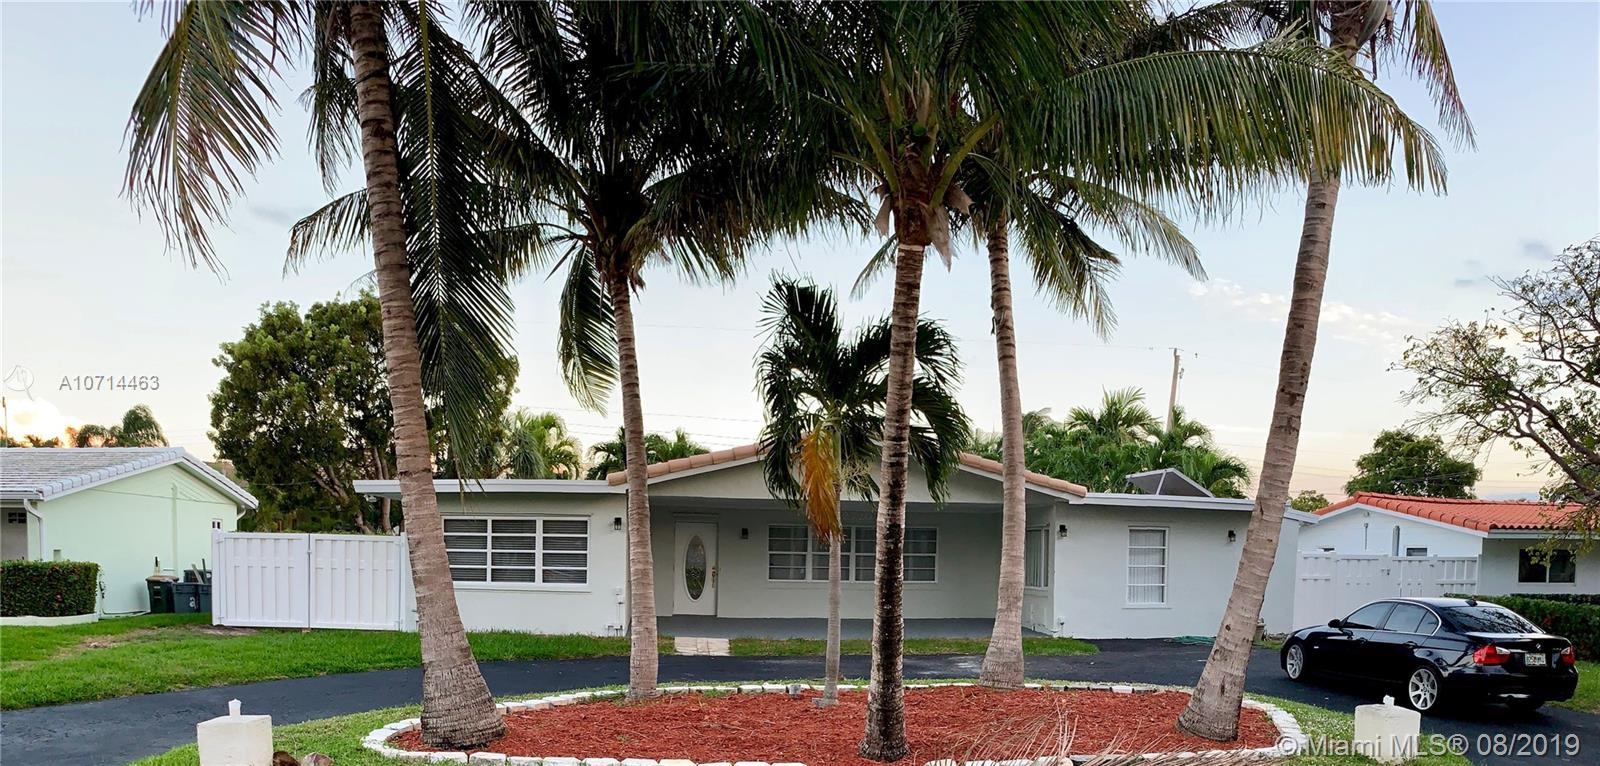 Beautiful 5/3 with two master suites that has been fully remodeled with brand new stainless steel ap